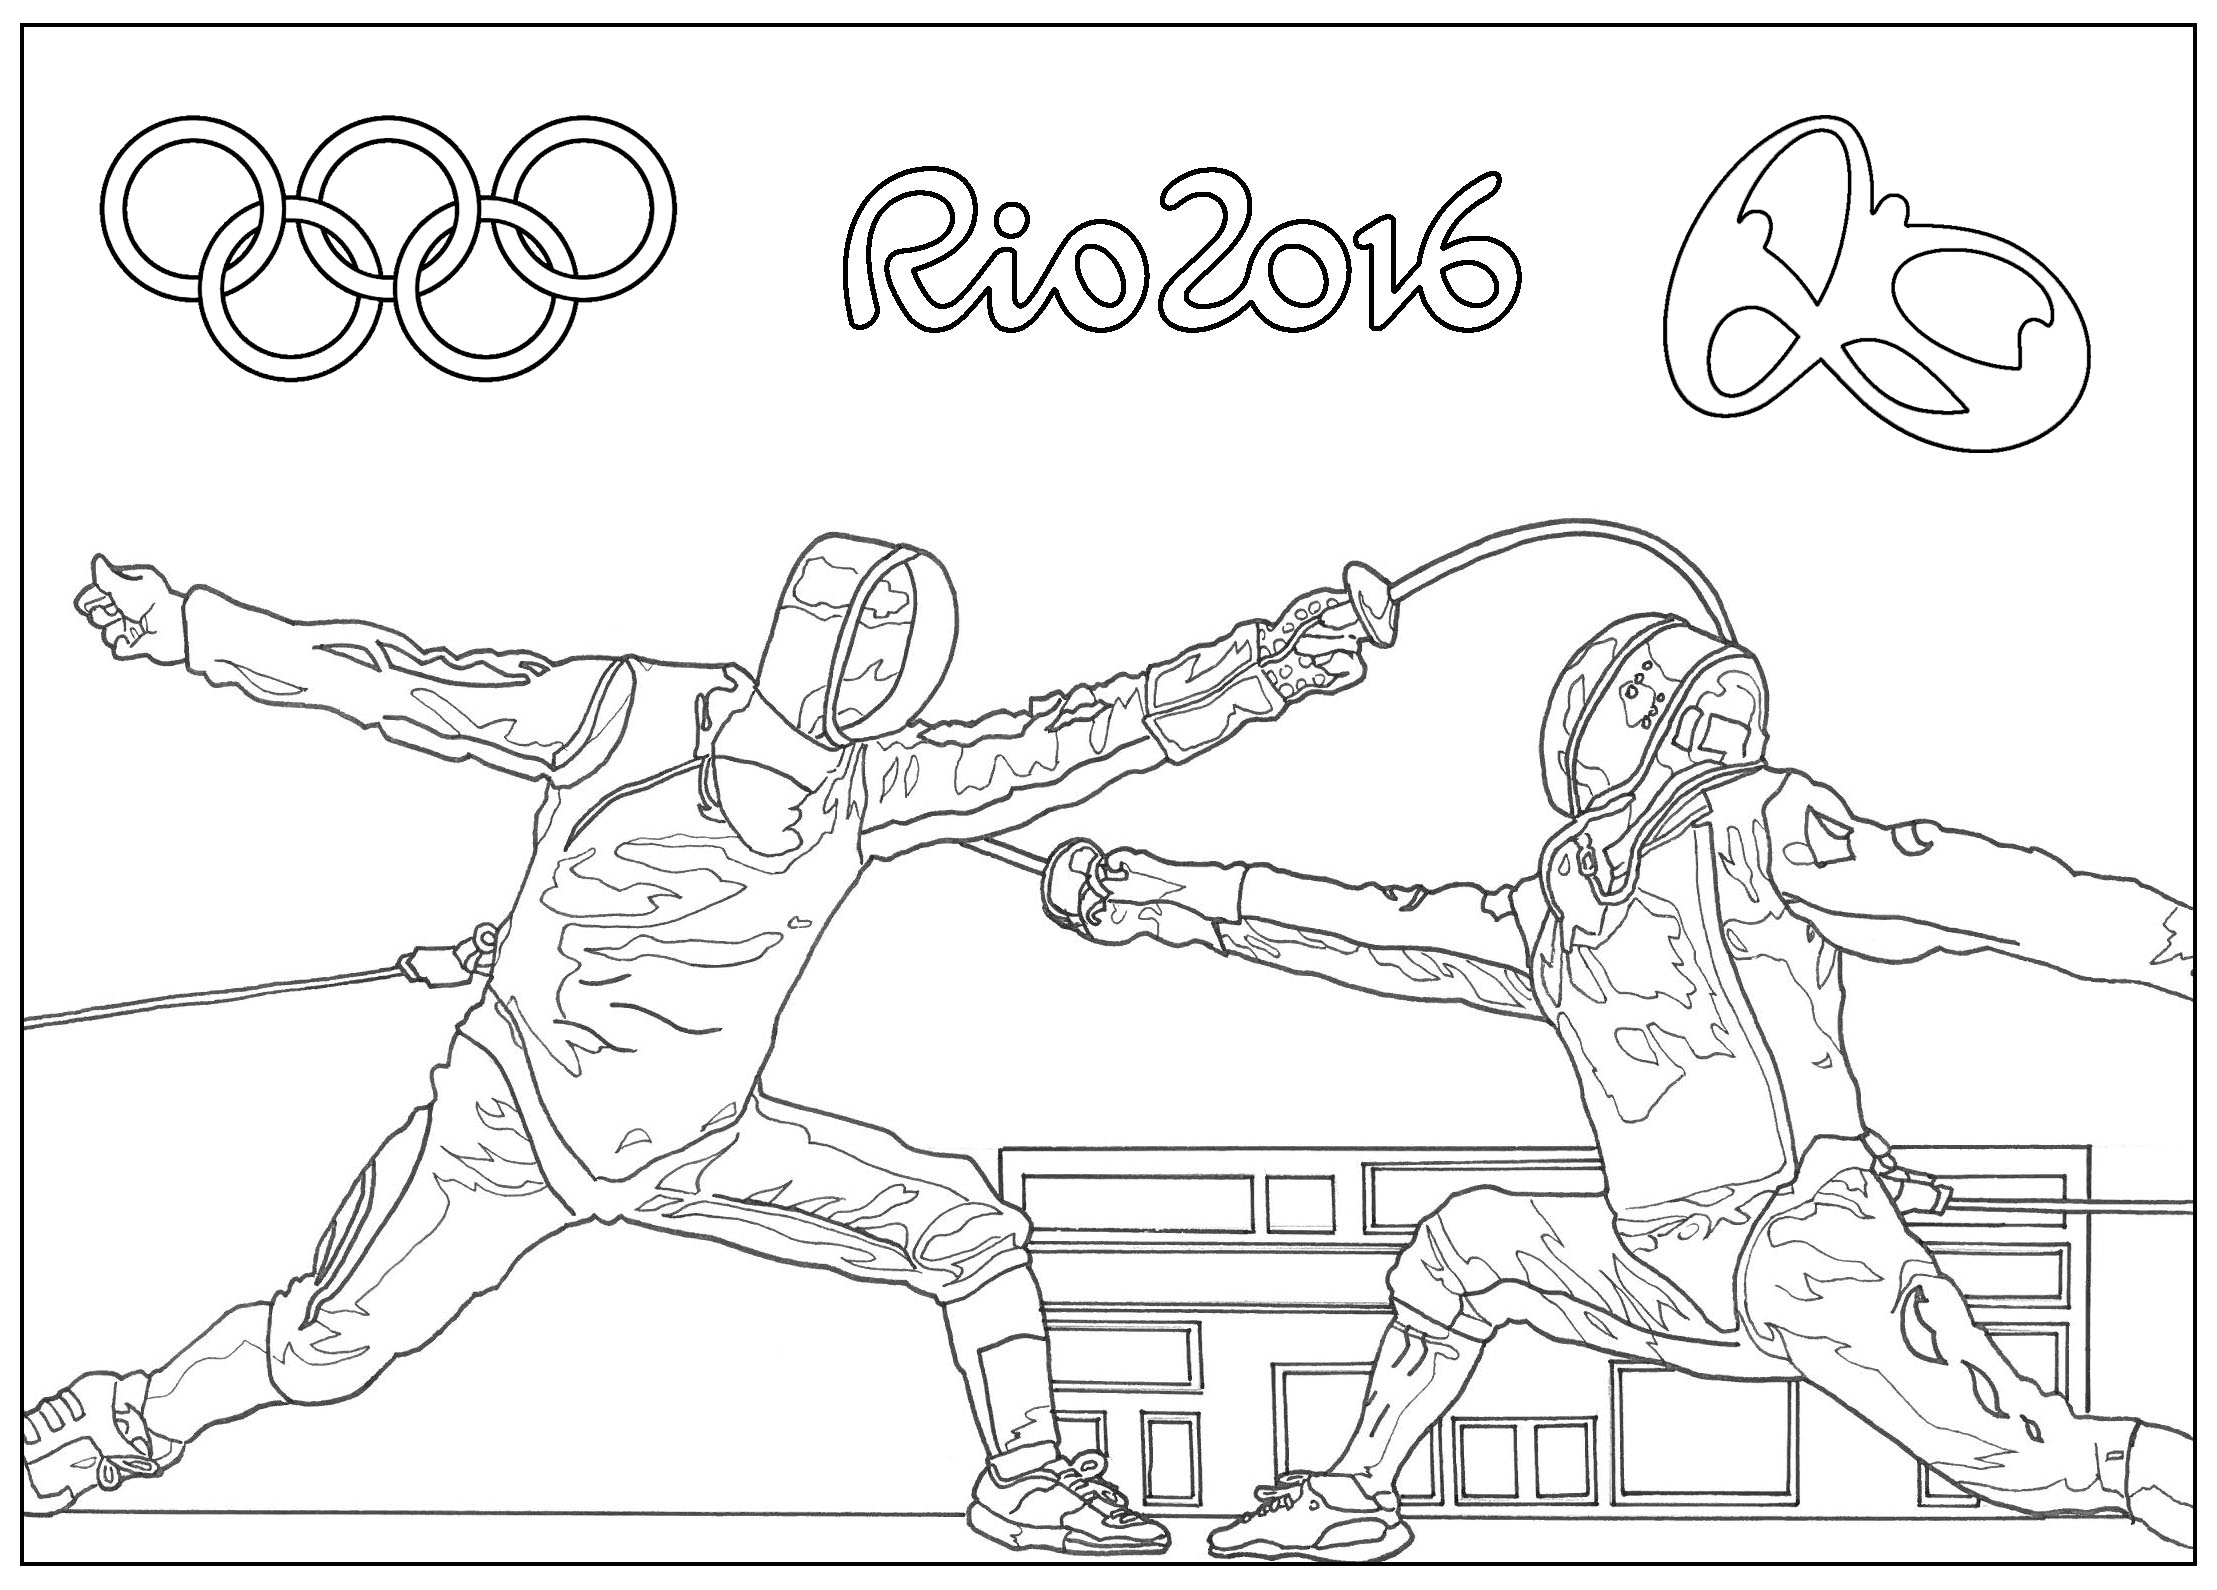 rio 2016 olympic games fencing olympic sport adult coloring pages collection of 8 free printable